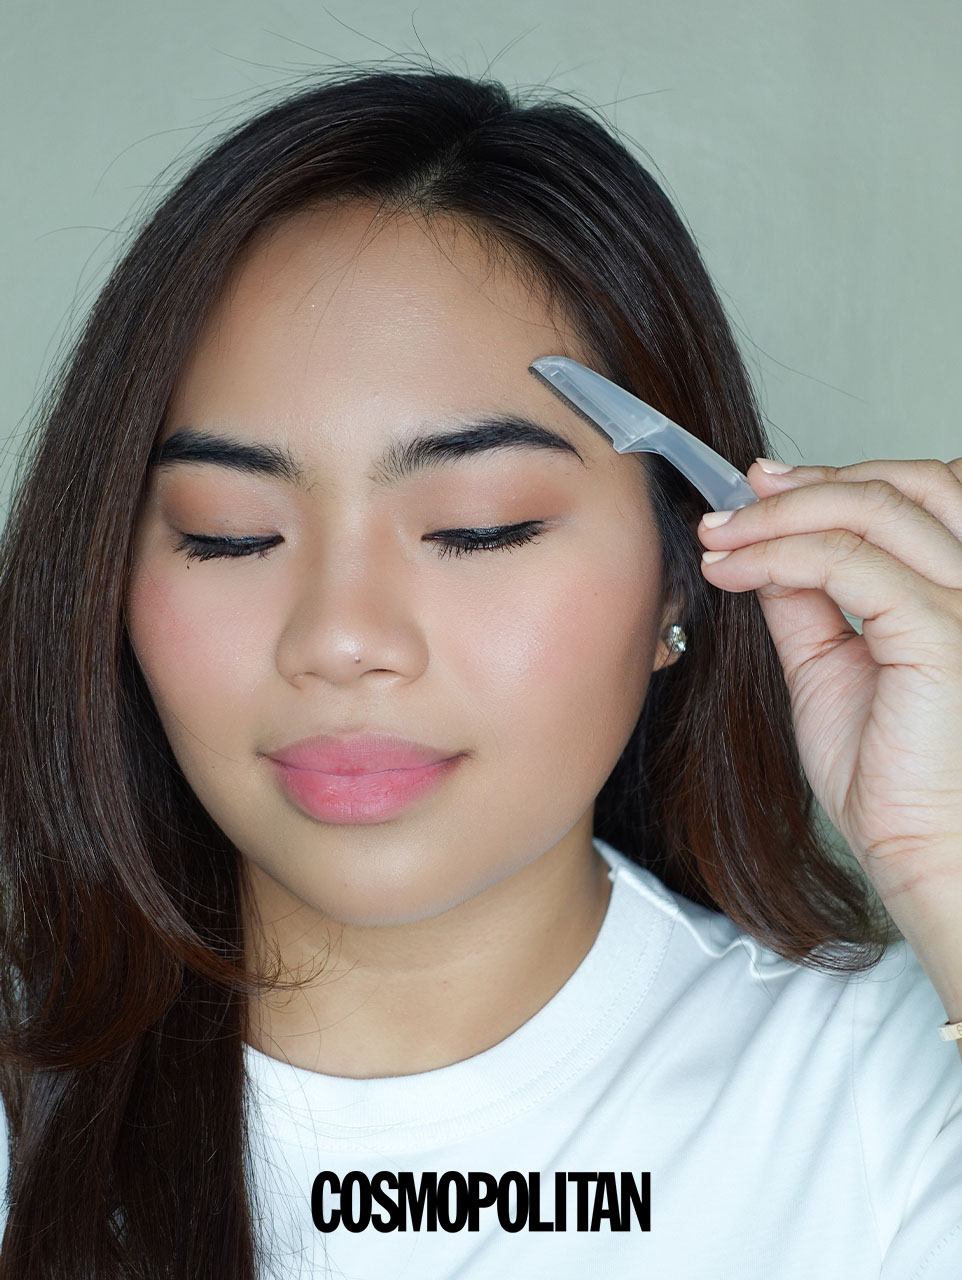 Easy 5-Step Routine For Bushy Brows - Clean up the area.